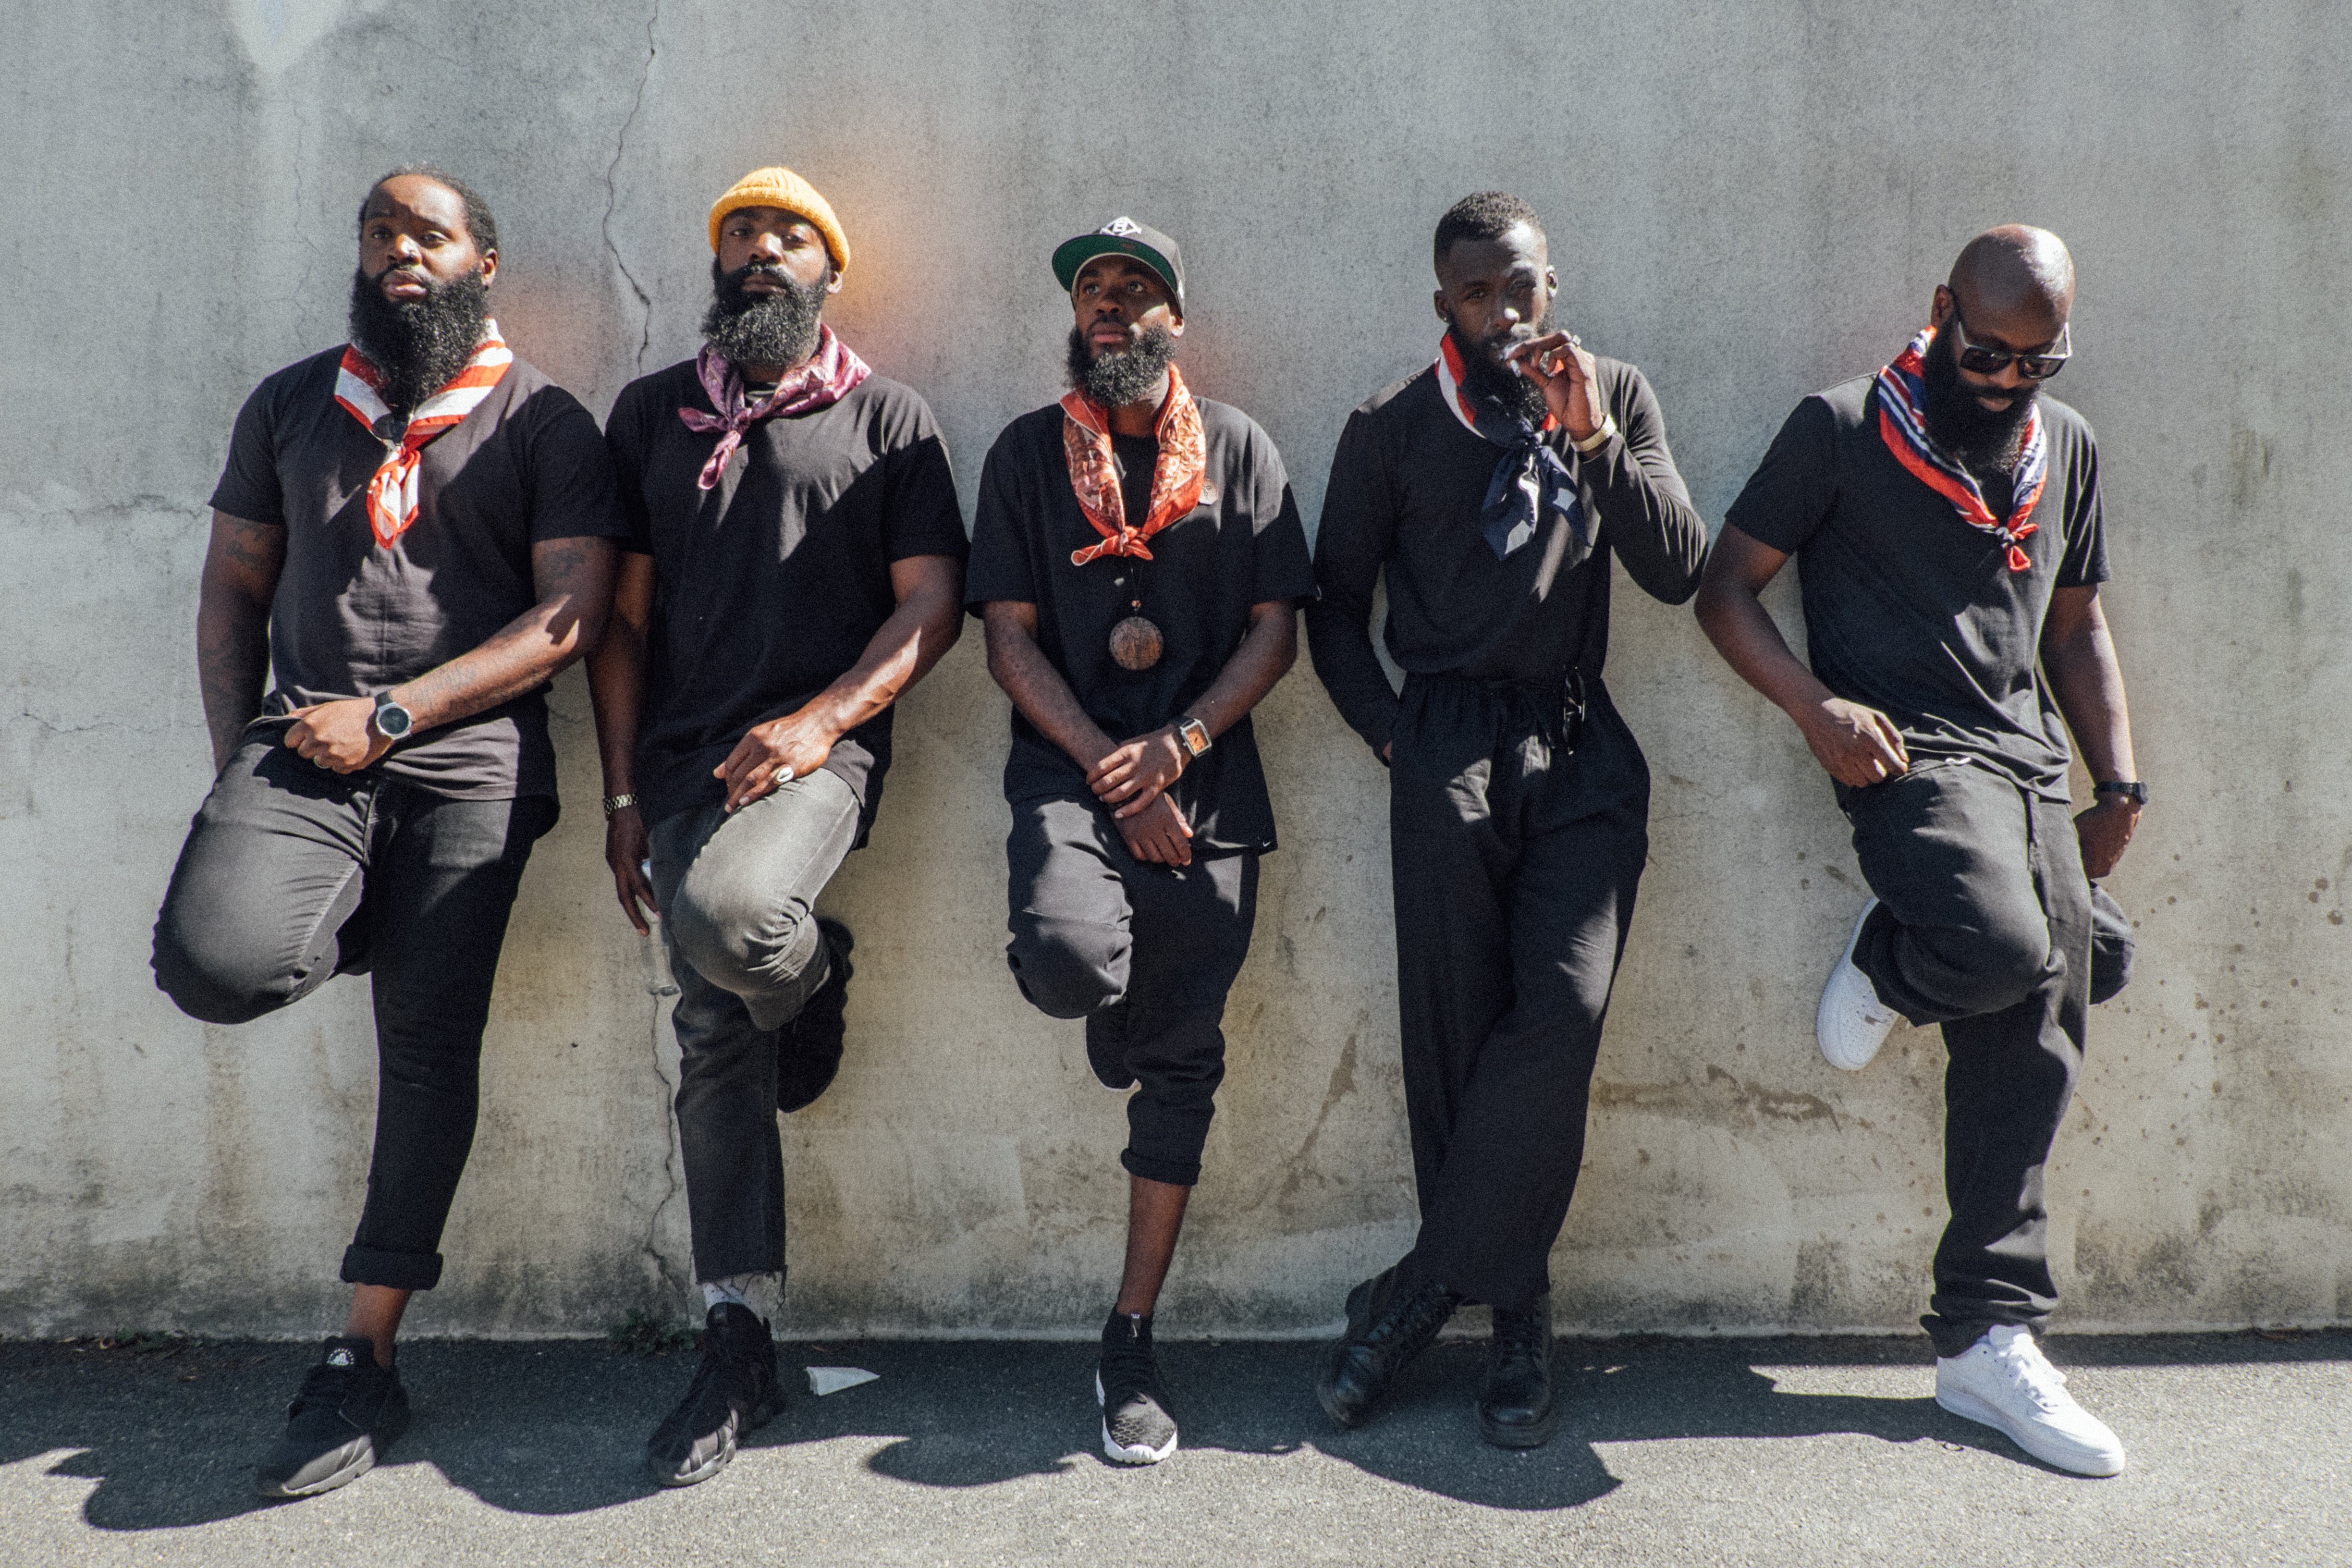 BEARD GANG OF PARIS